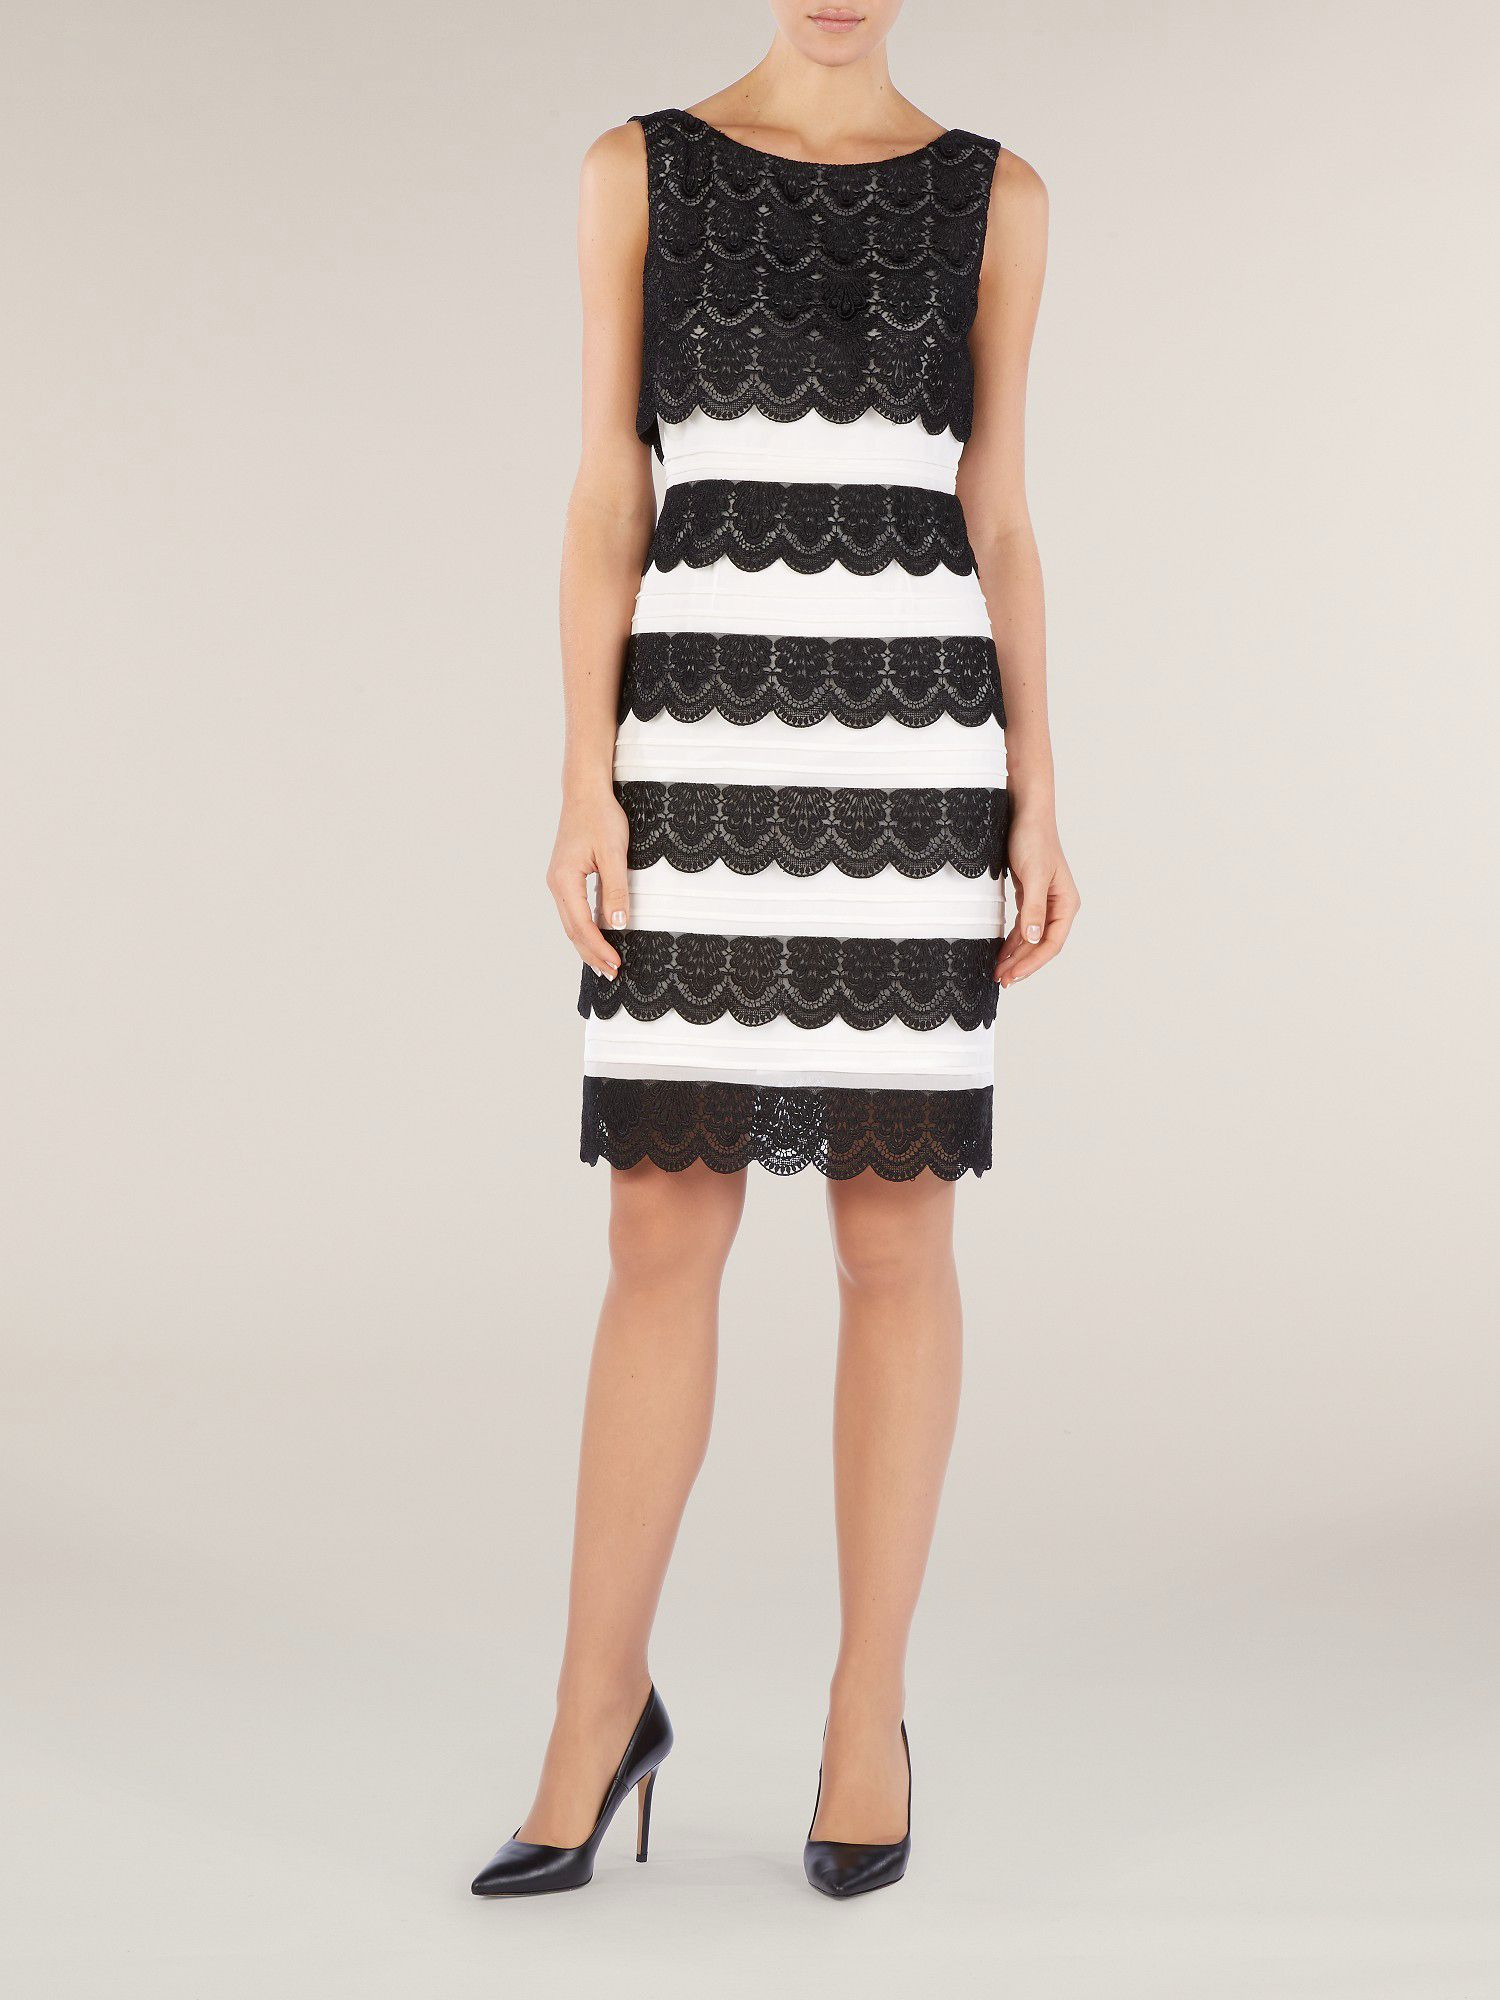 Monochrome lace layer dress